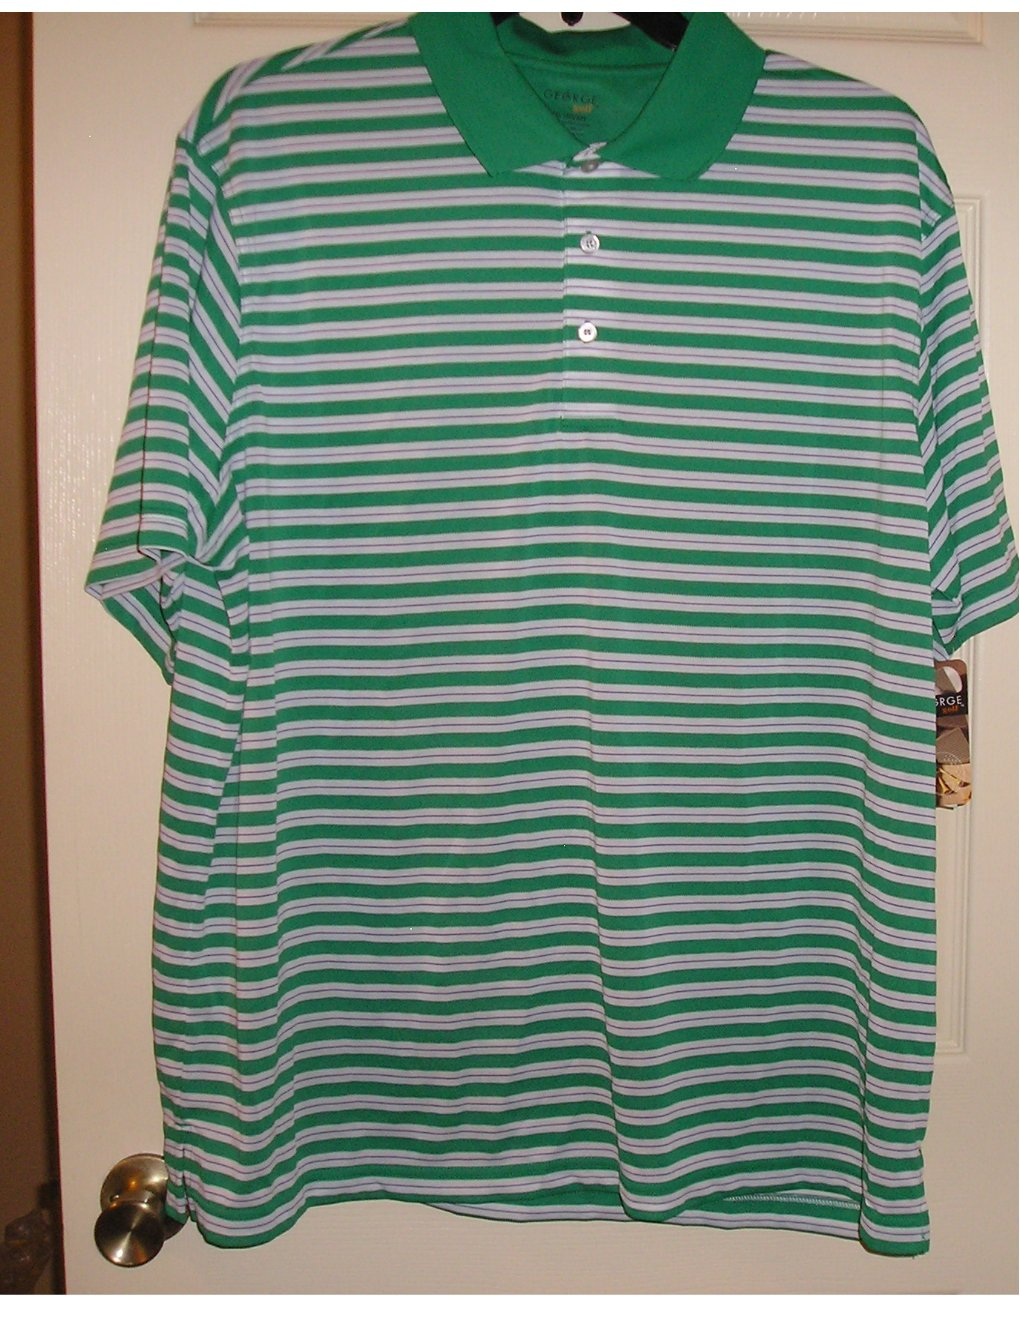 New Big Tall 2xl Golf Polo Shirt Mens By George Short